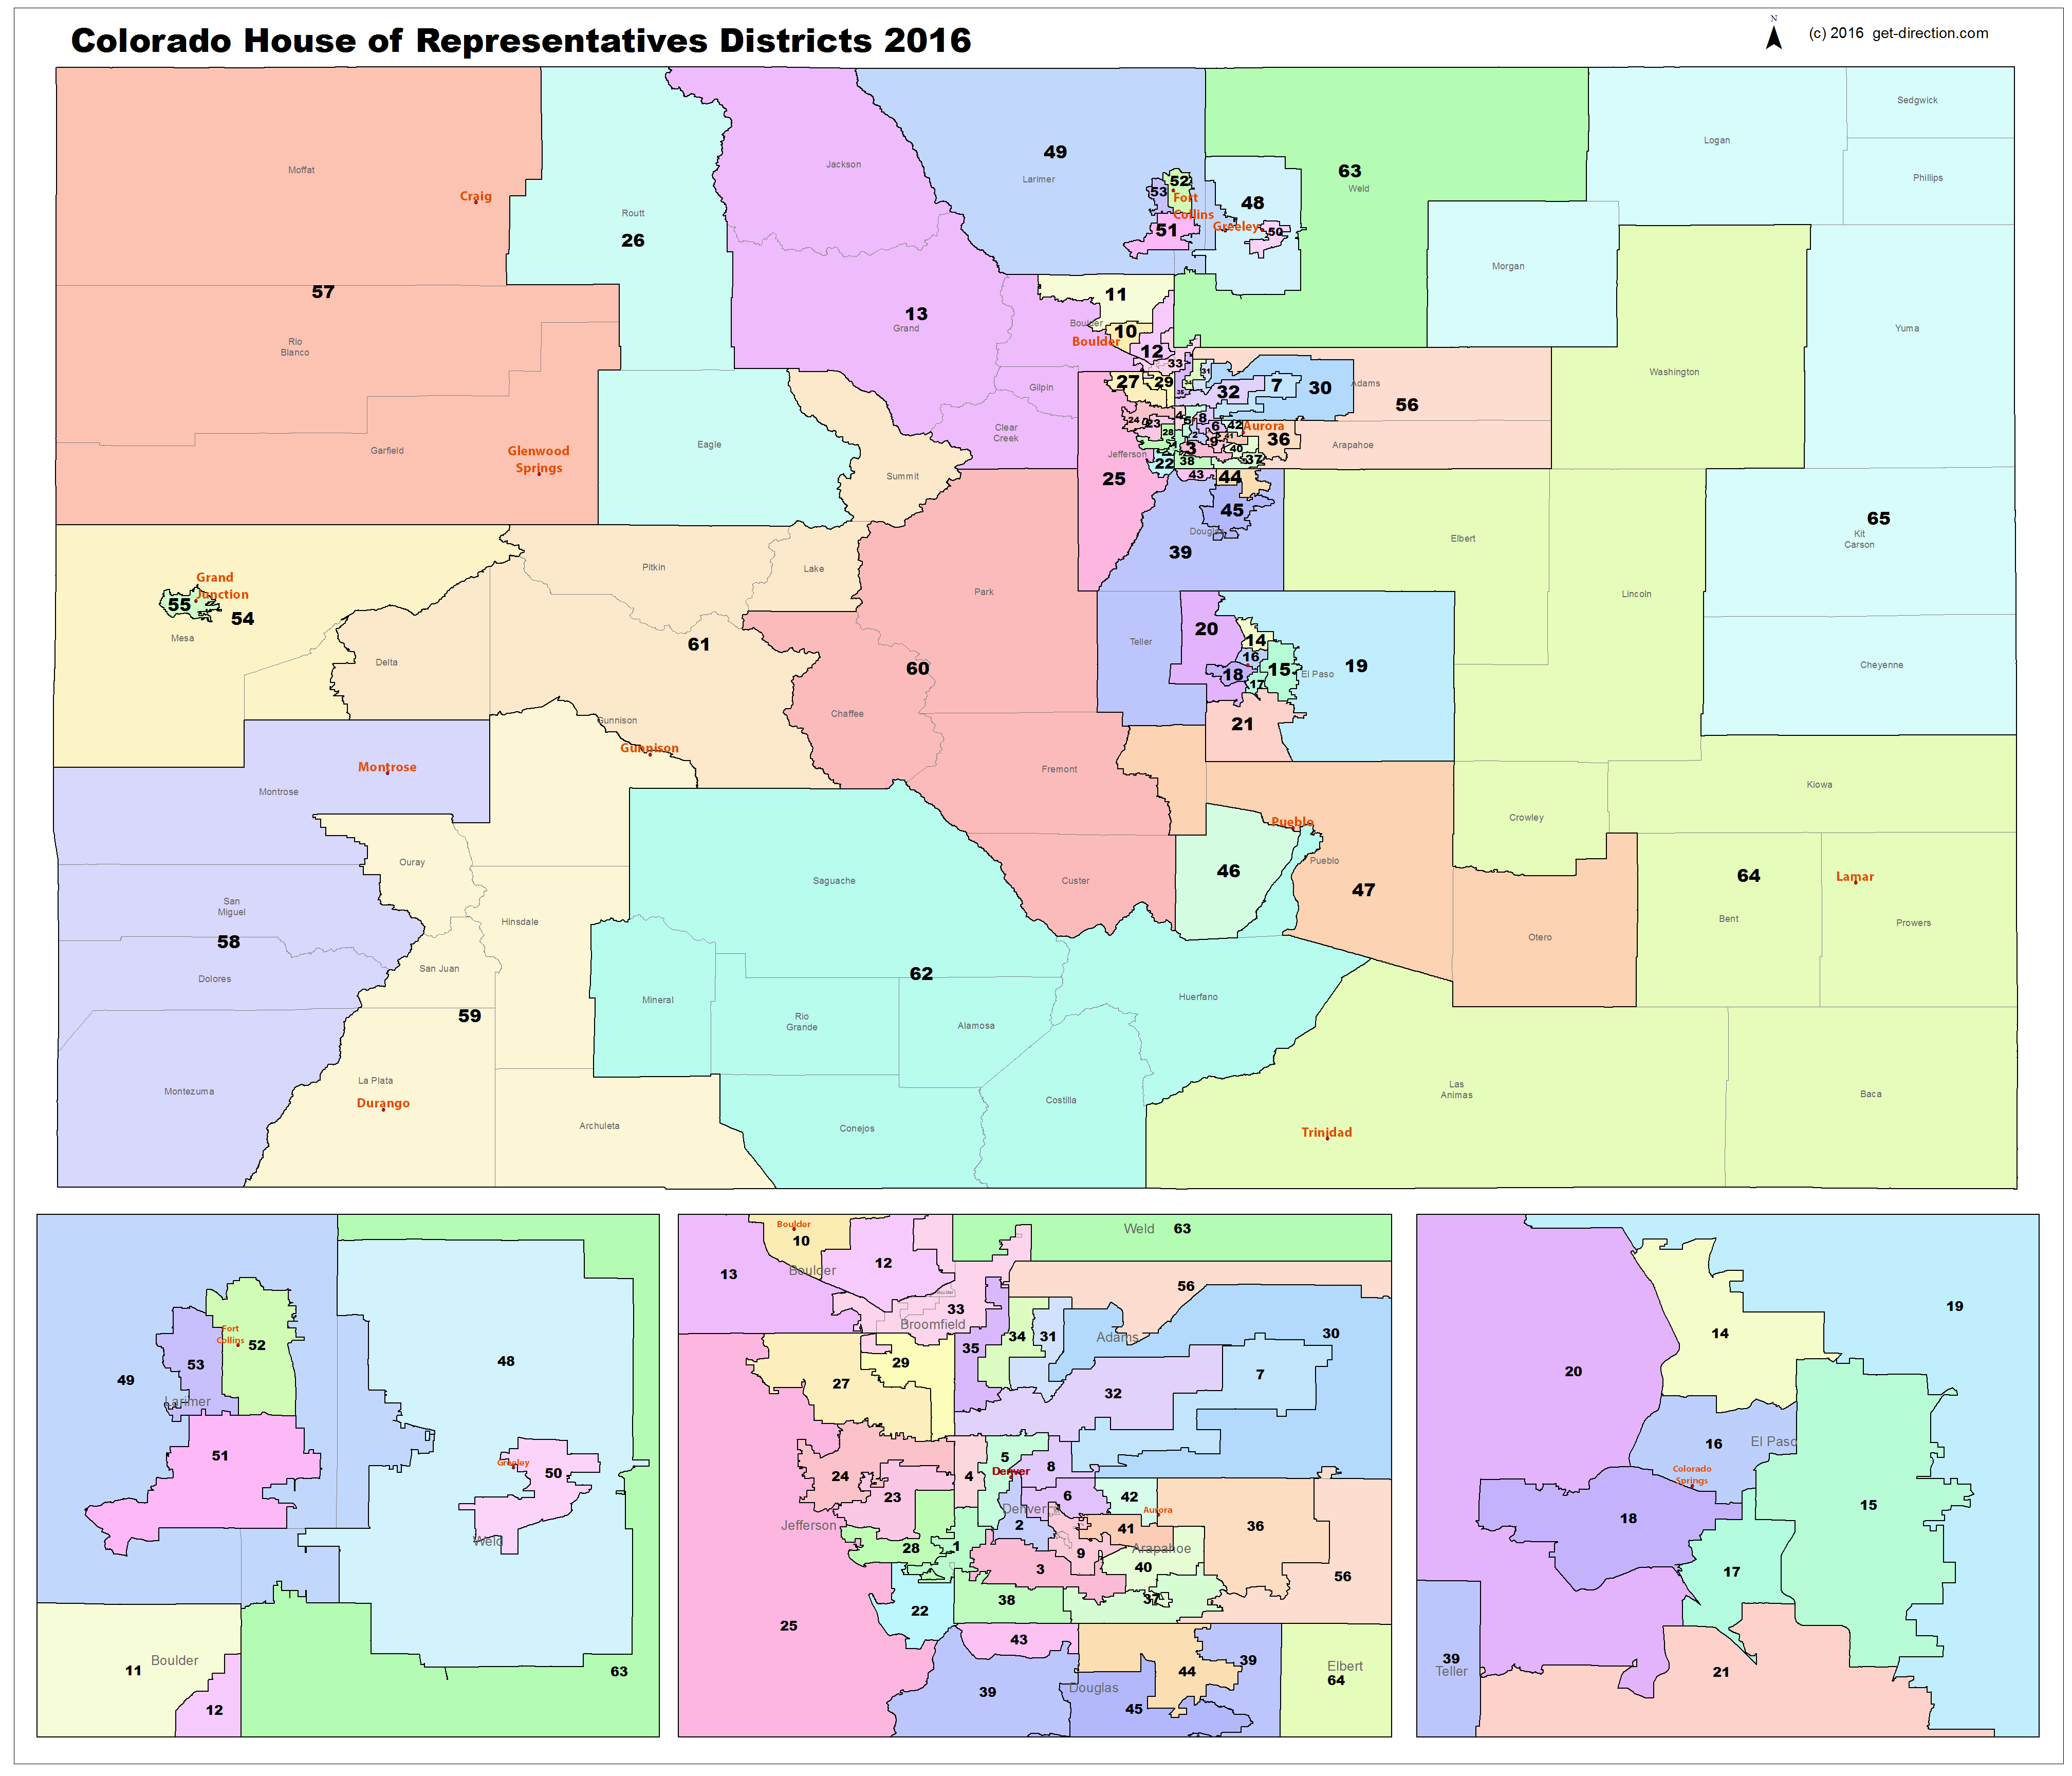 colorado-house-of-representatives-districts-2016.png